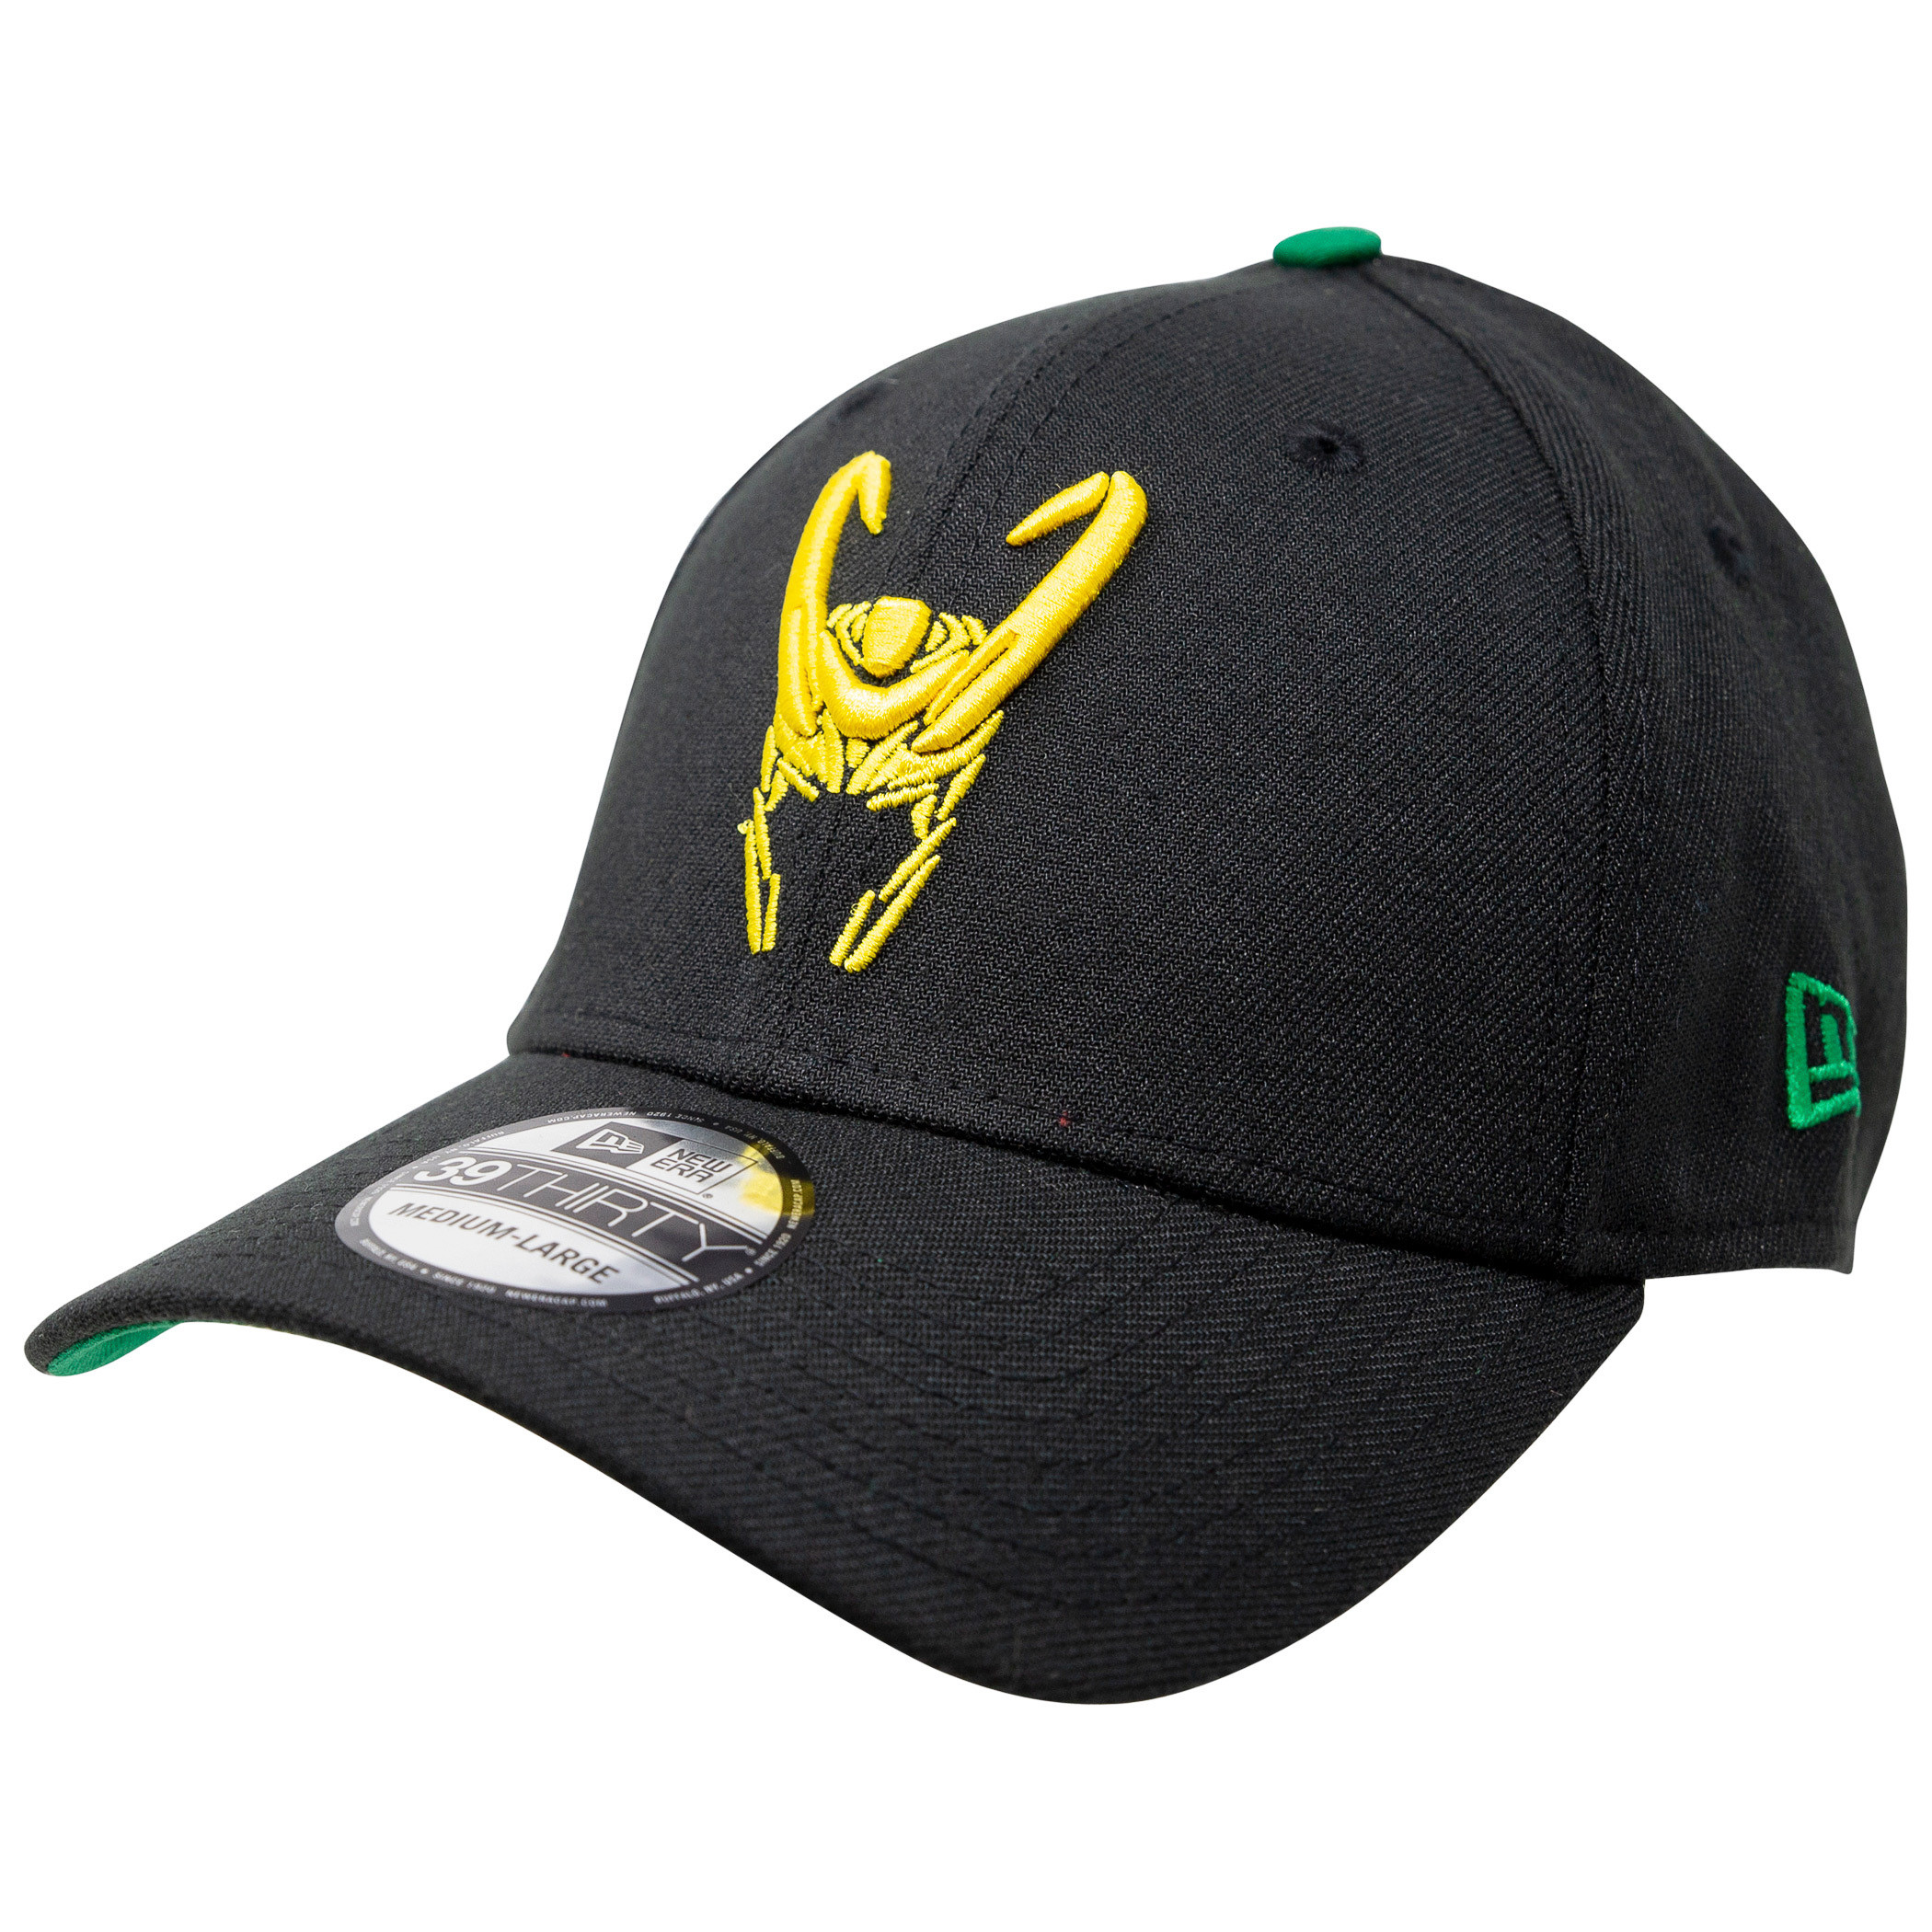 Loki Helmet New Era 39Thirty Fitted Hat